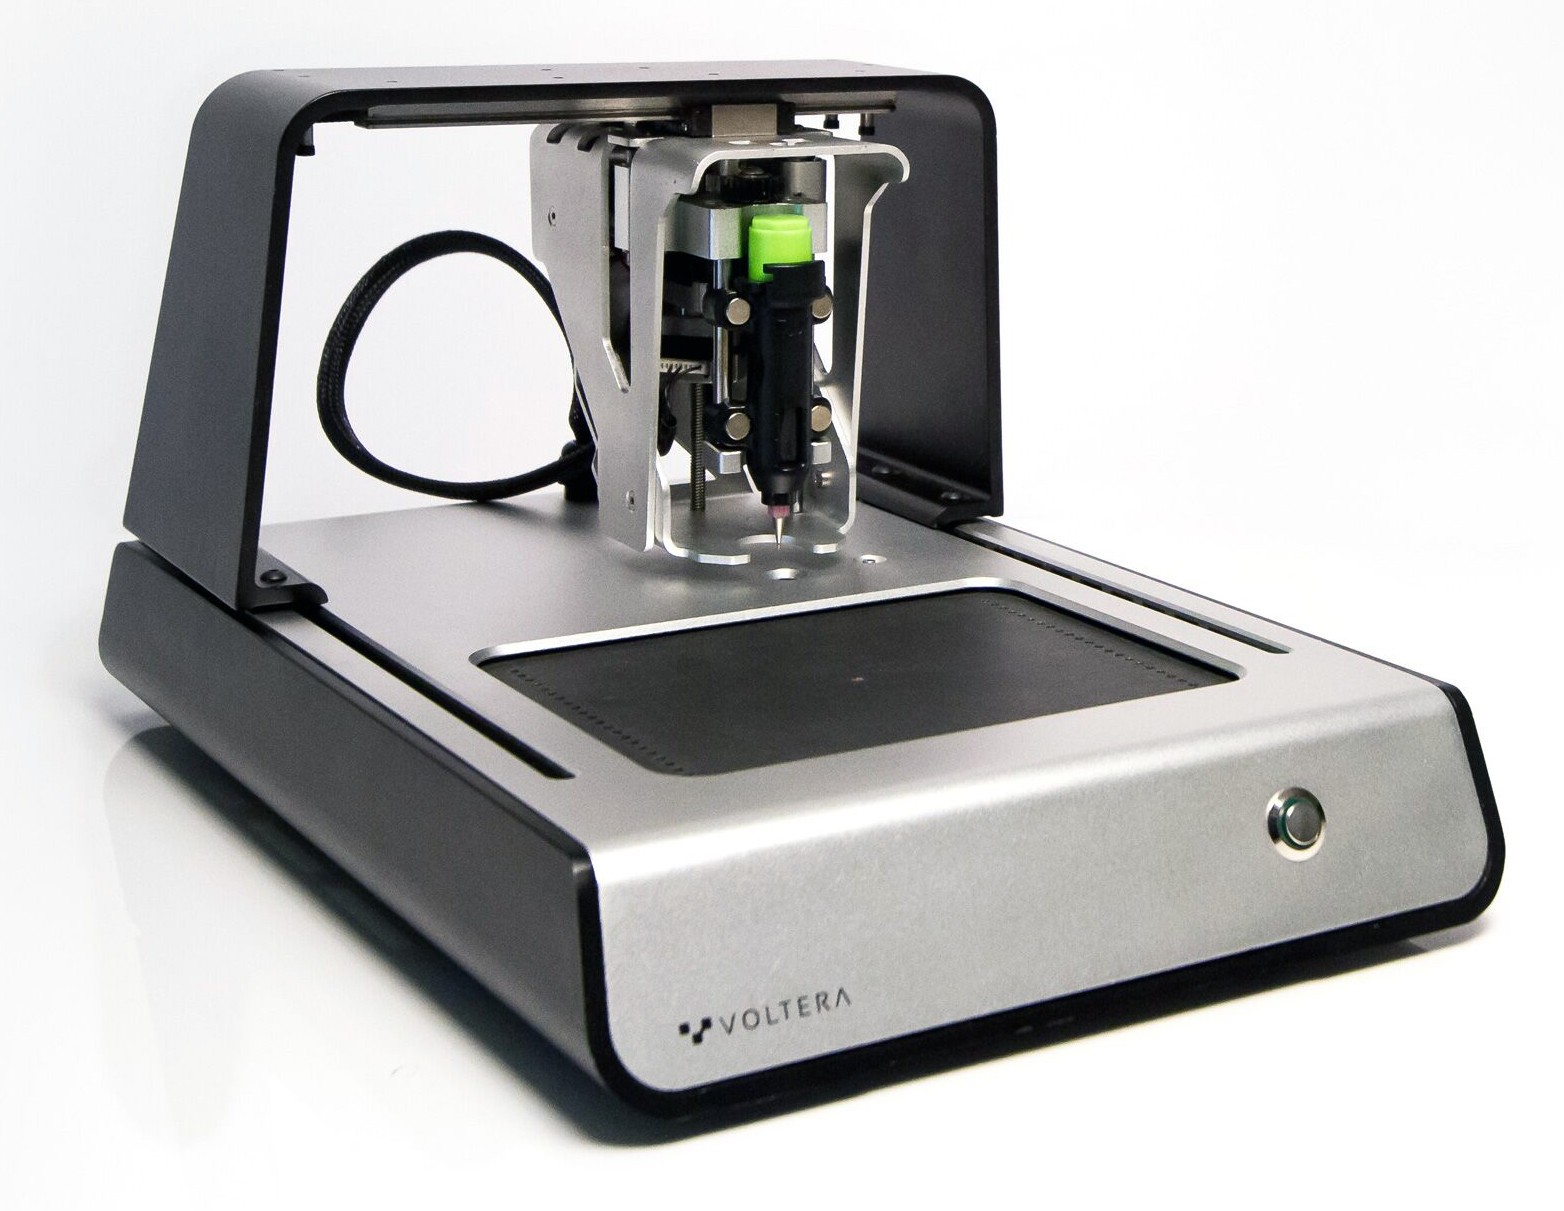 Voltera V-One Desktop PCB Printer